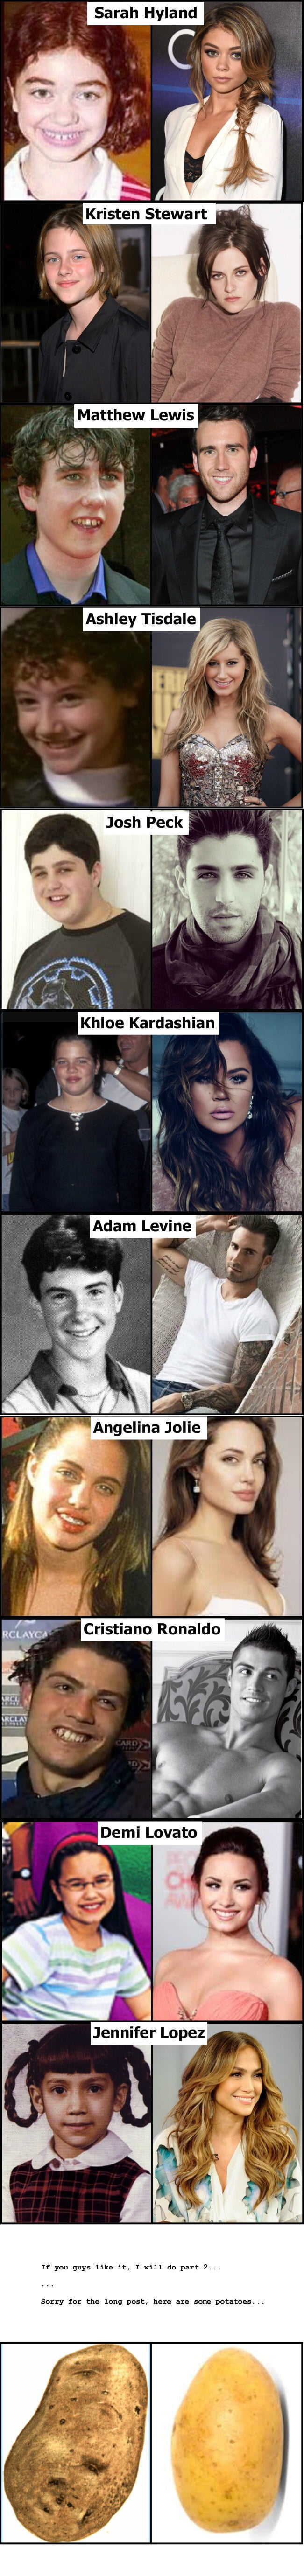 Celebrities then and now (part 1)